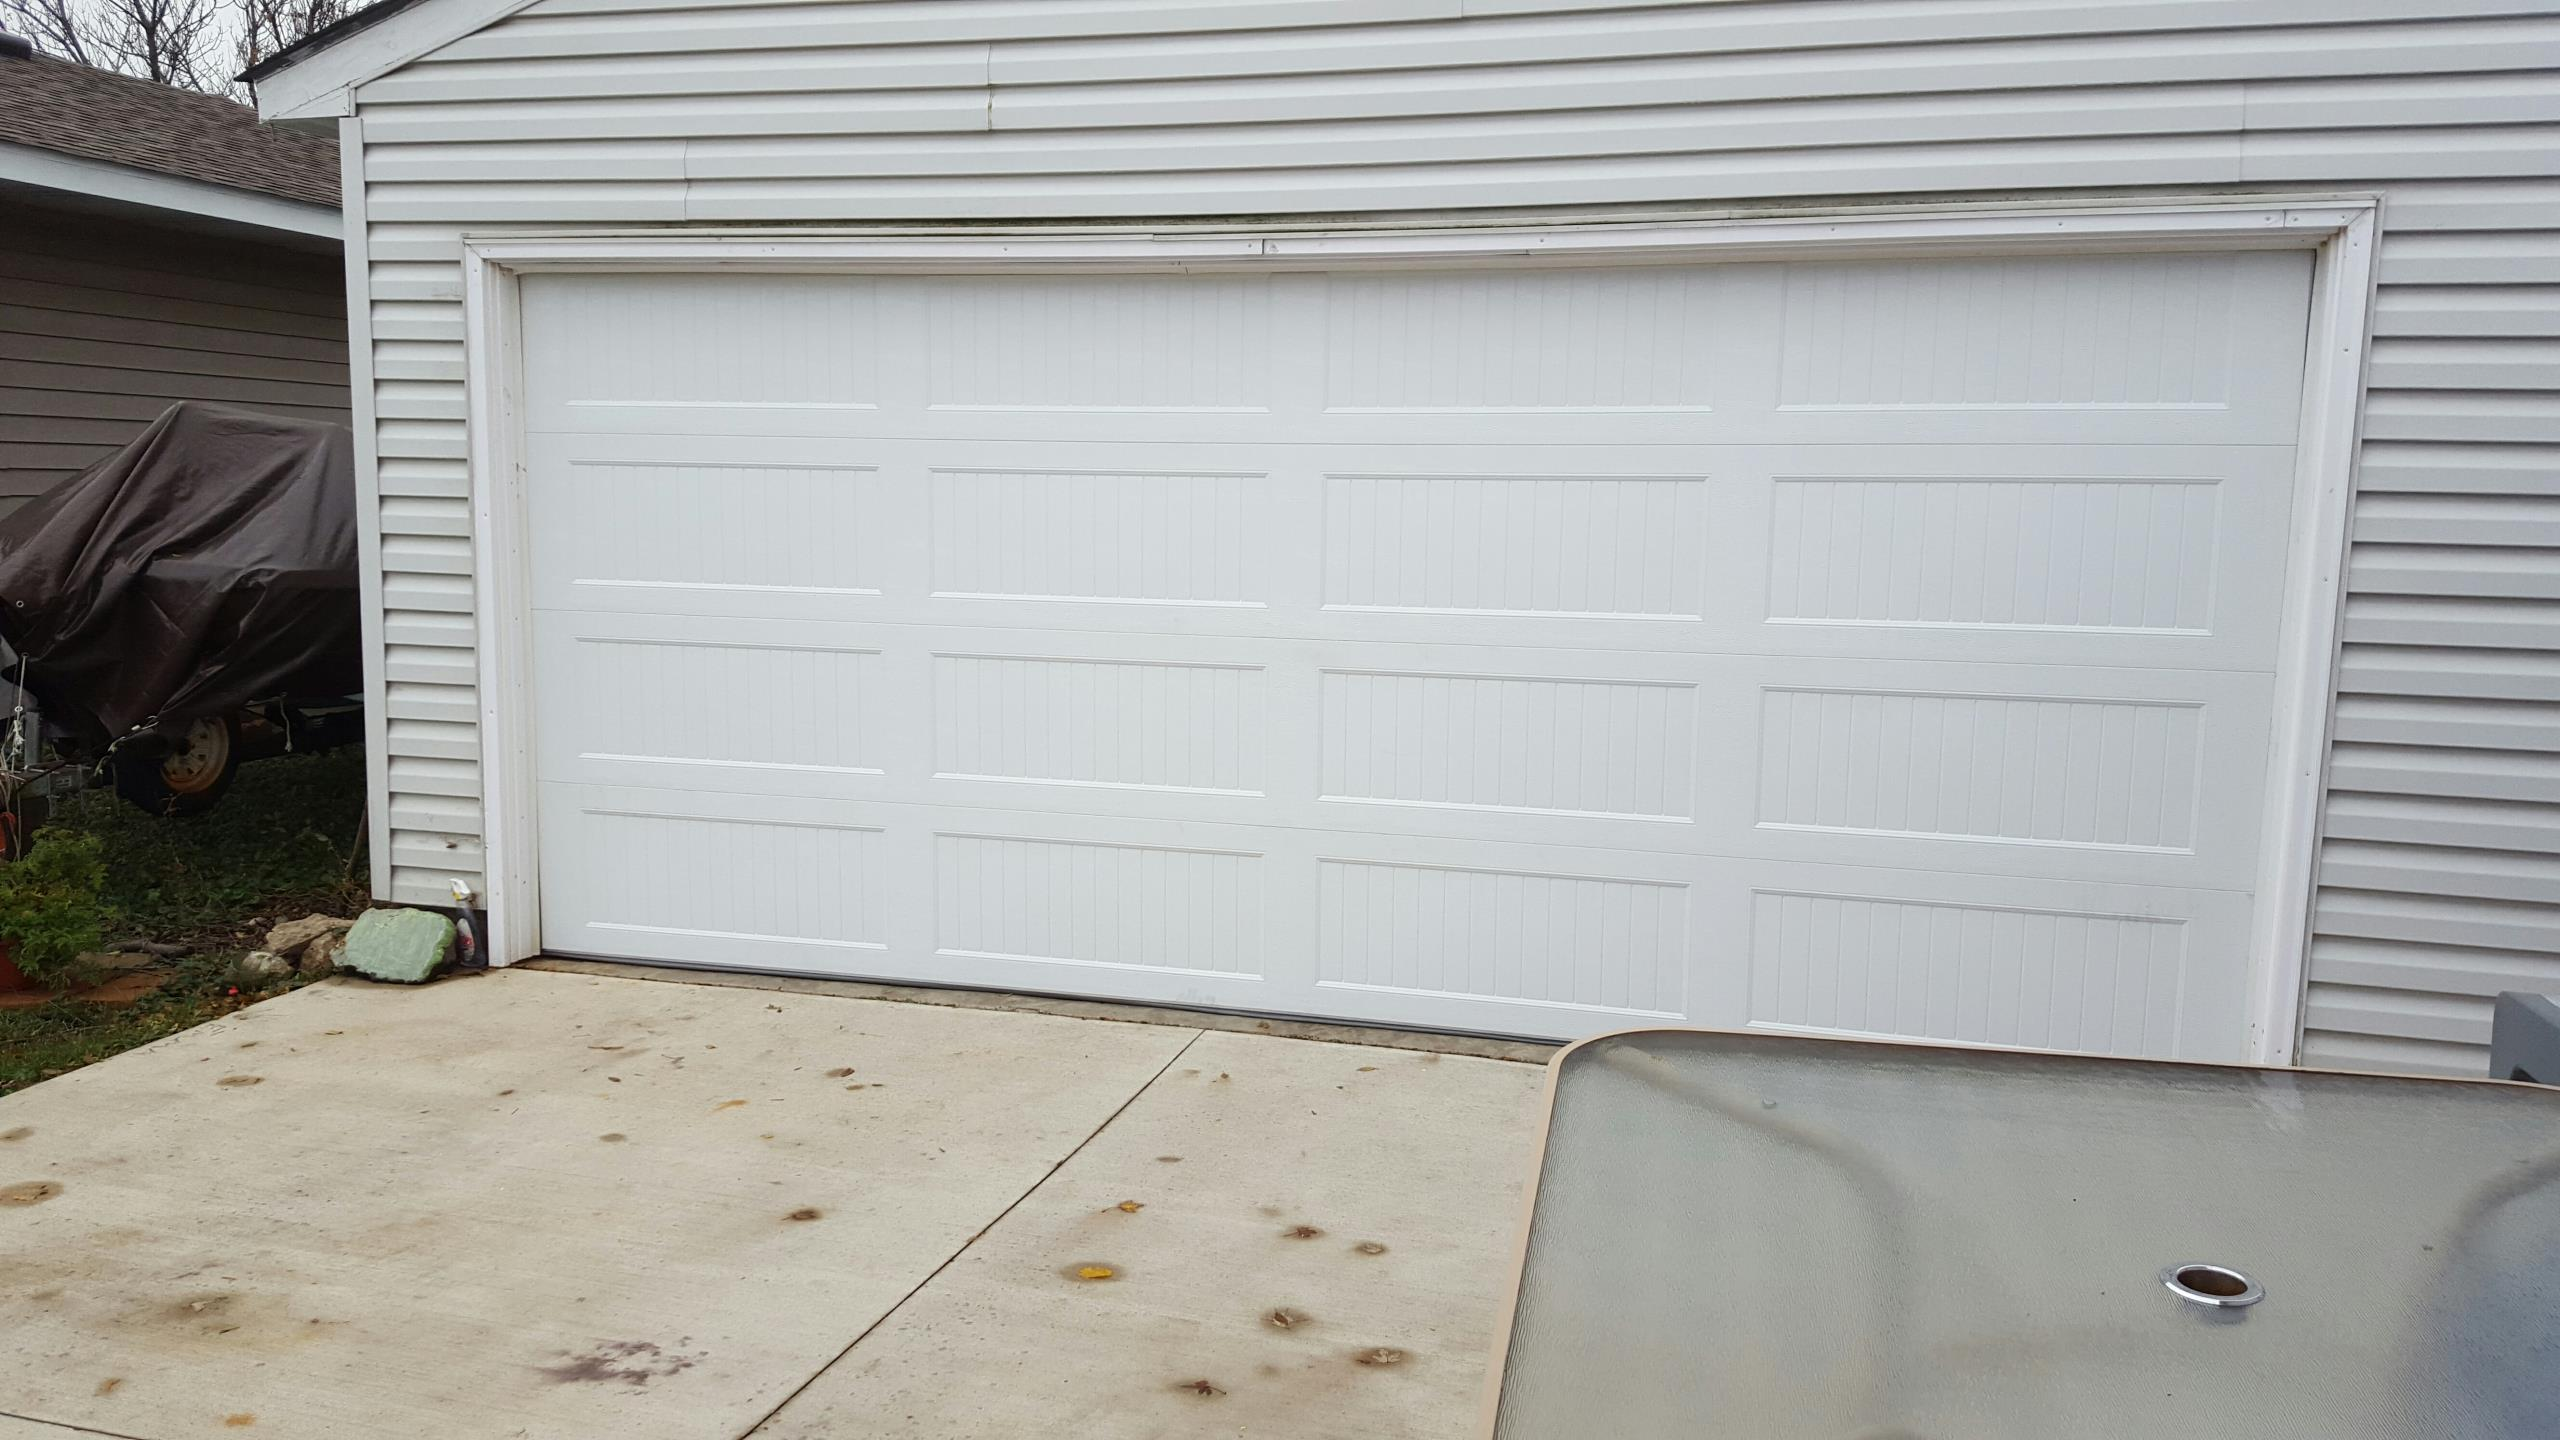 North Saint Paul, MN - Jeremy installed 16 ?7 garage door